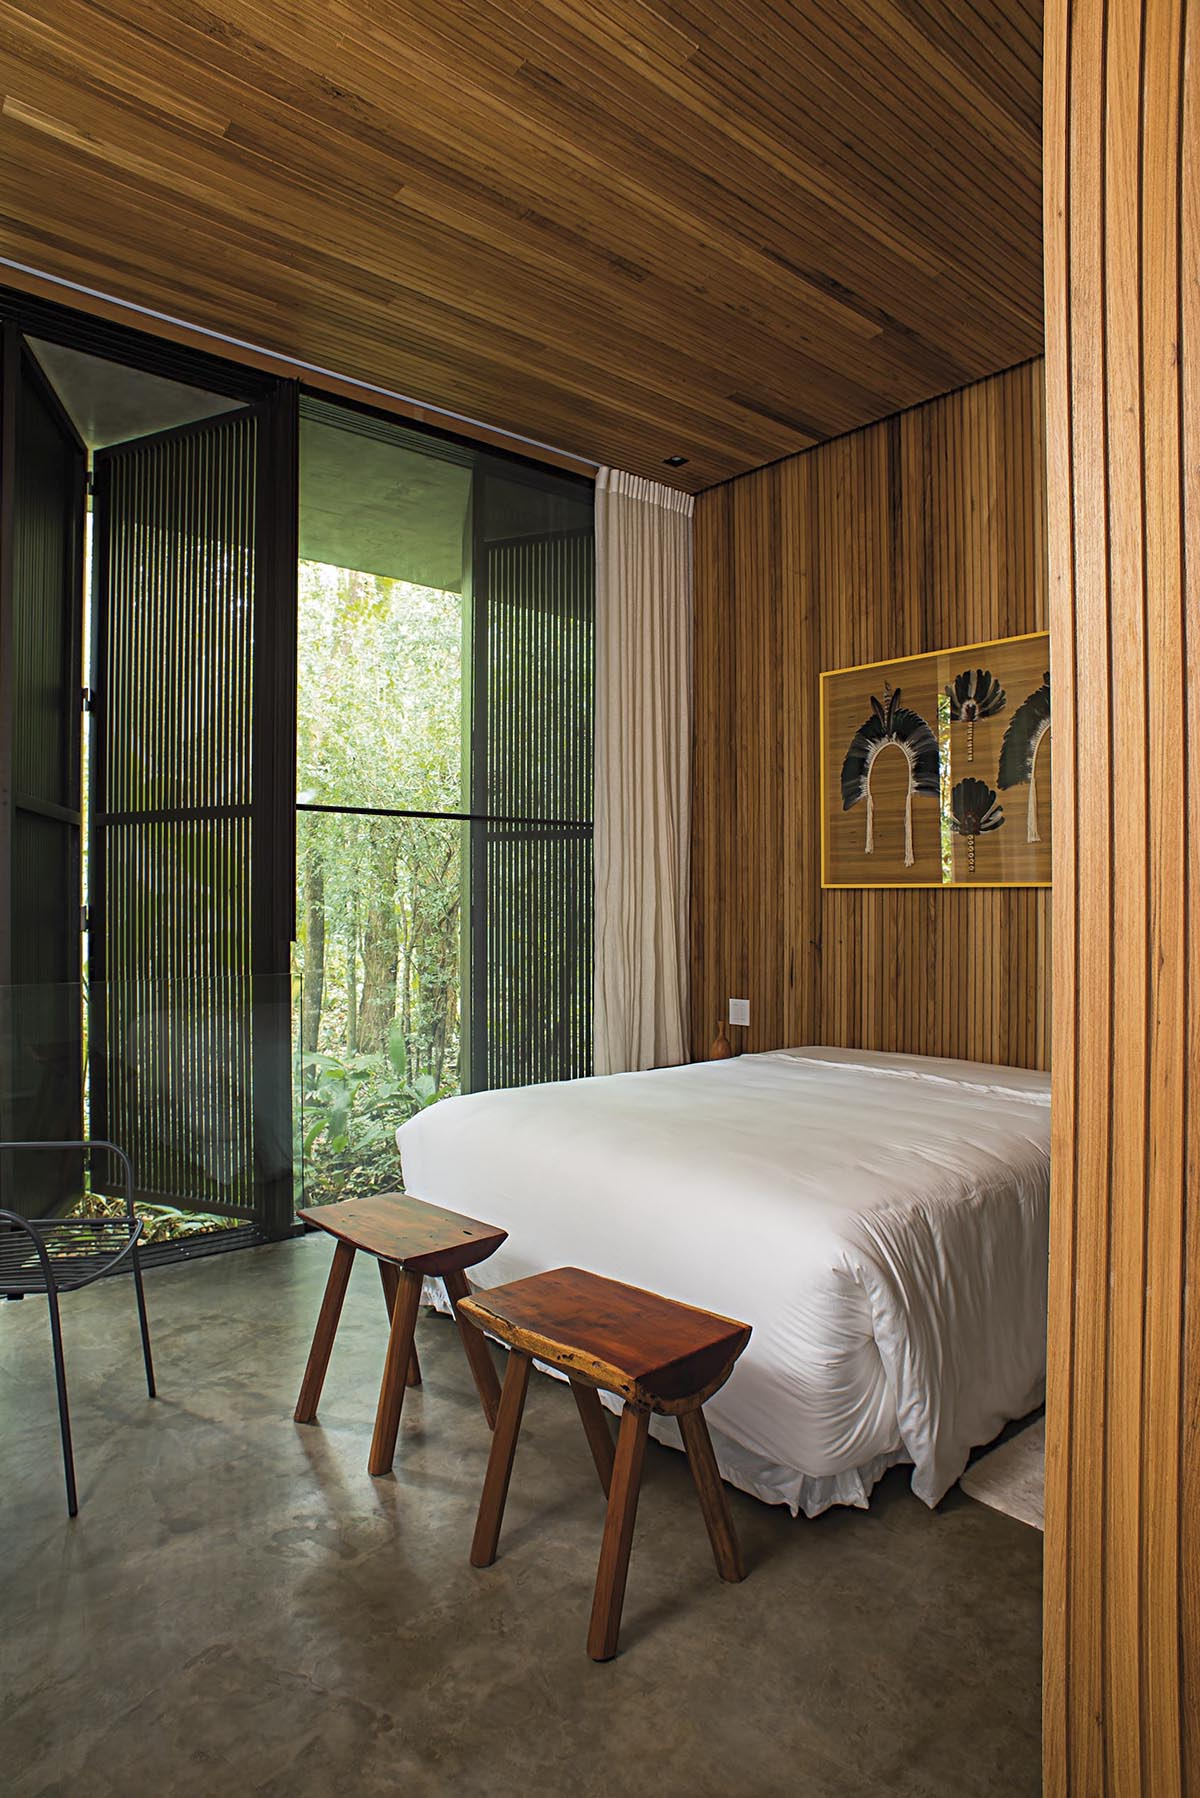 In this modern bedroom the wood ceiling carries on to the wall, creating a backdrop for the bed and artwork. Wood shutters create privacy, however when open, they allow the natural light to flood the room.